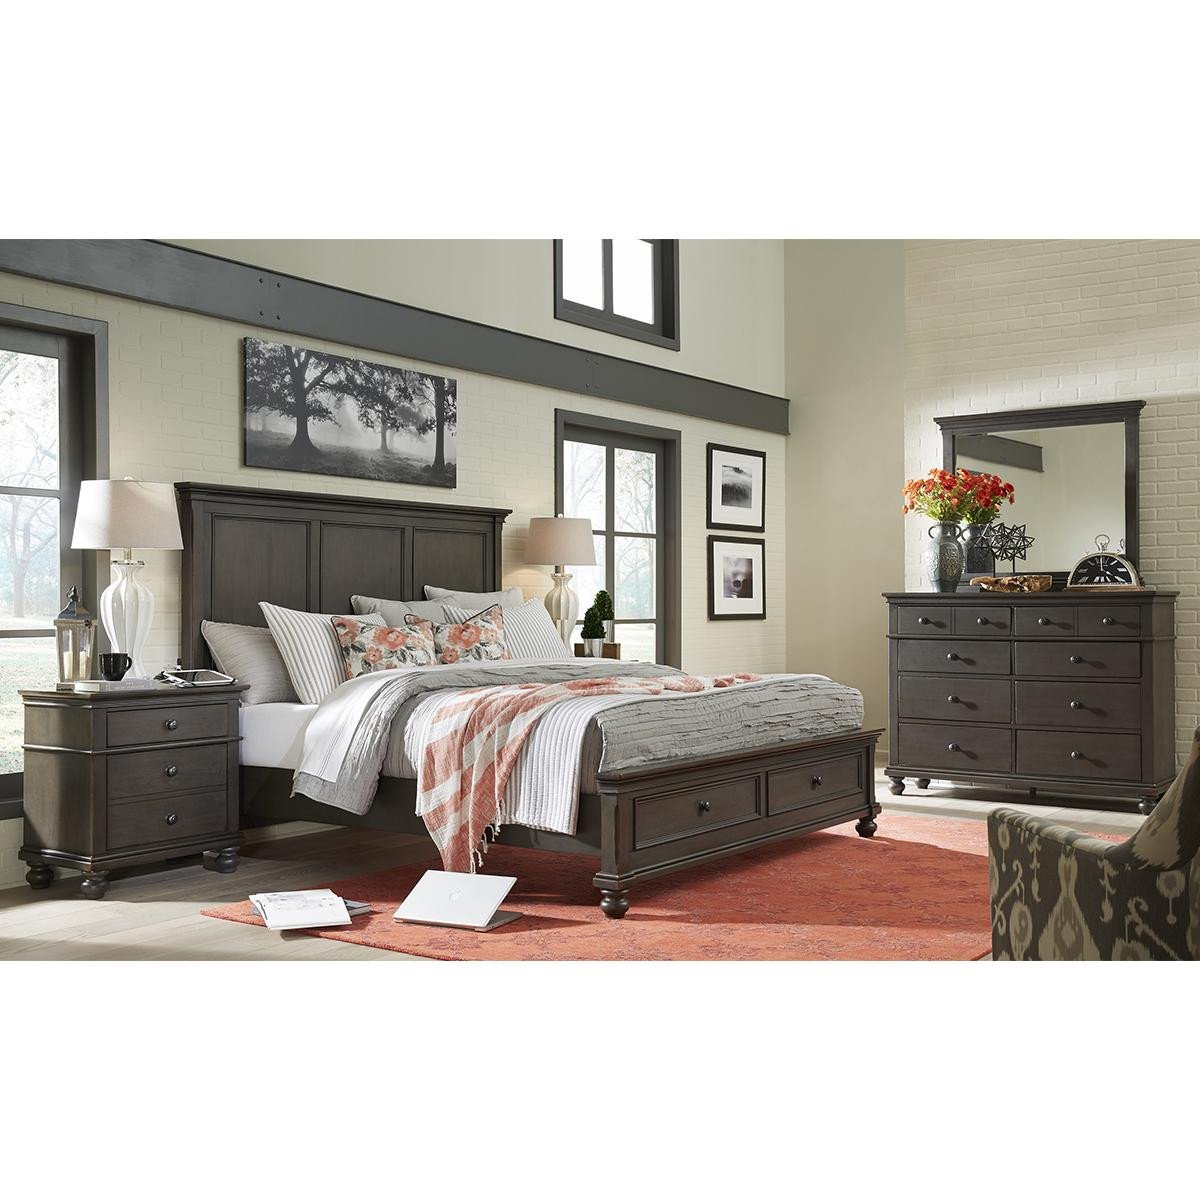 7 Piece Bedroom Set Queen Beautiful Riva Ridge Oxford 4 Piece Queen Bedroom Set In Peppercorn